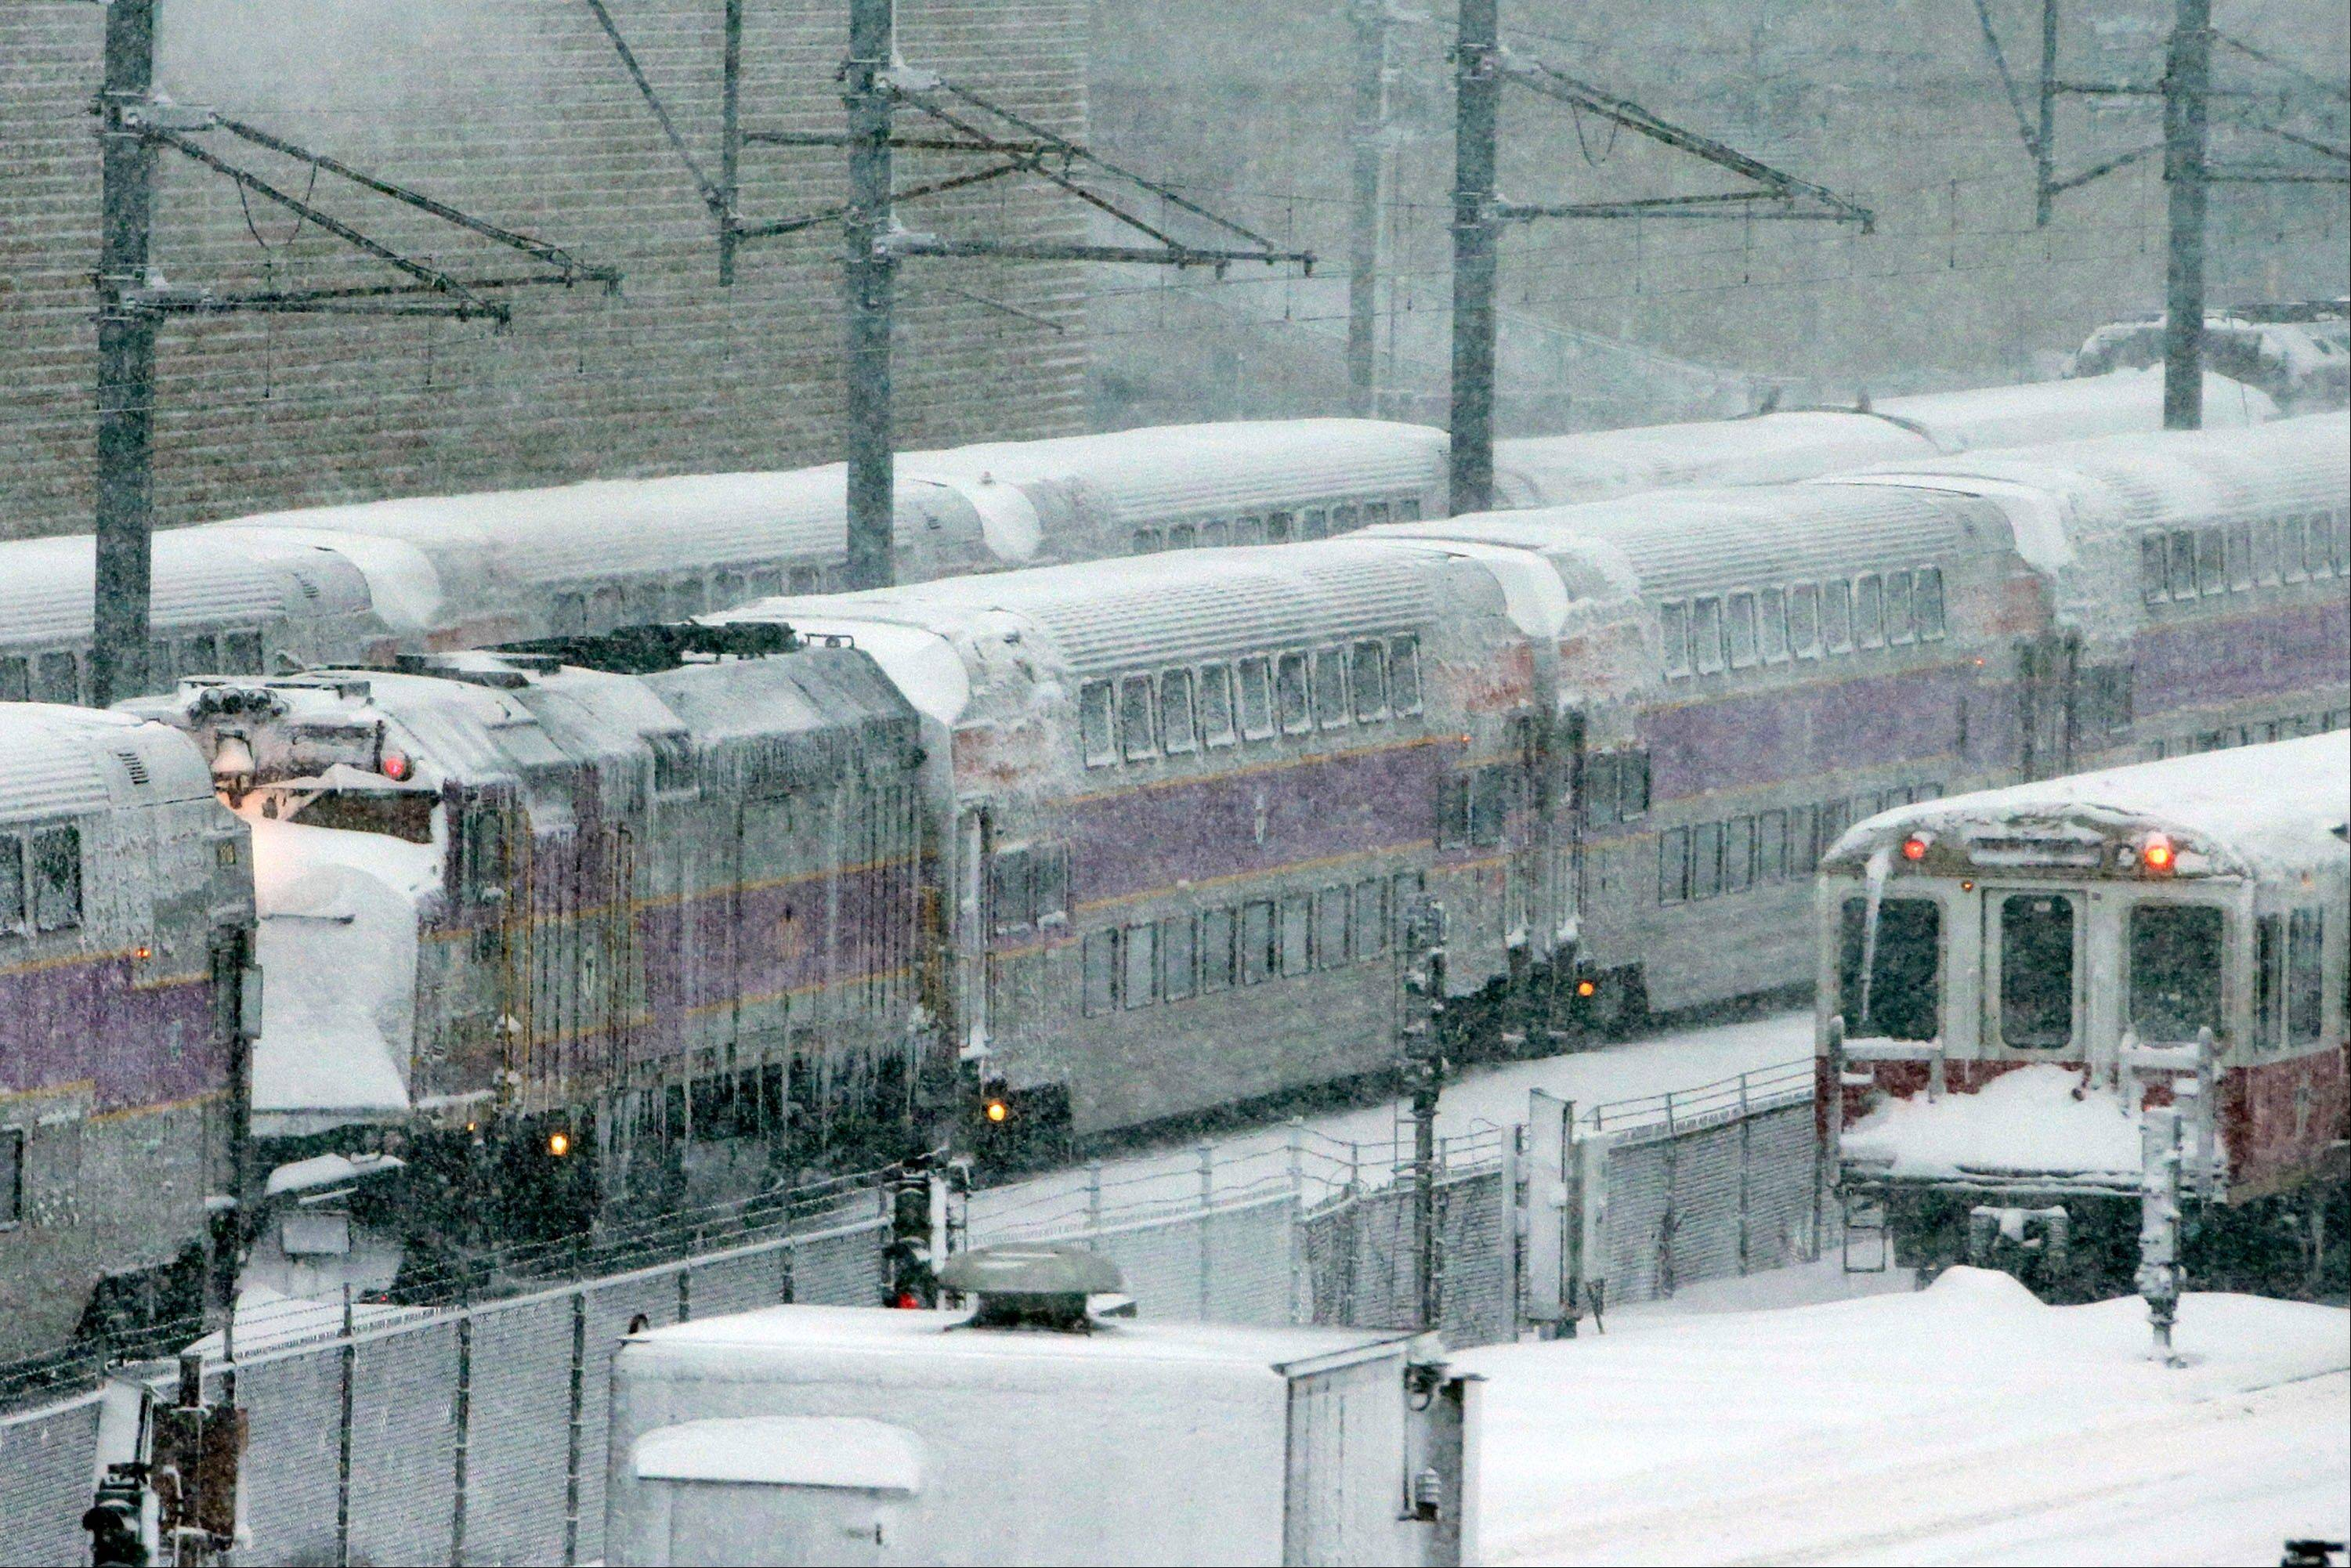 Massachusetts Bay Transportation Authority trains sit idle early Saturday in Boston due to high winds and the nearly two feet of snow that fell in the area overnight.